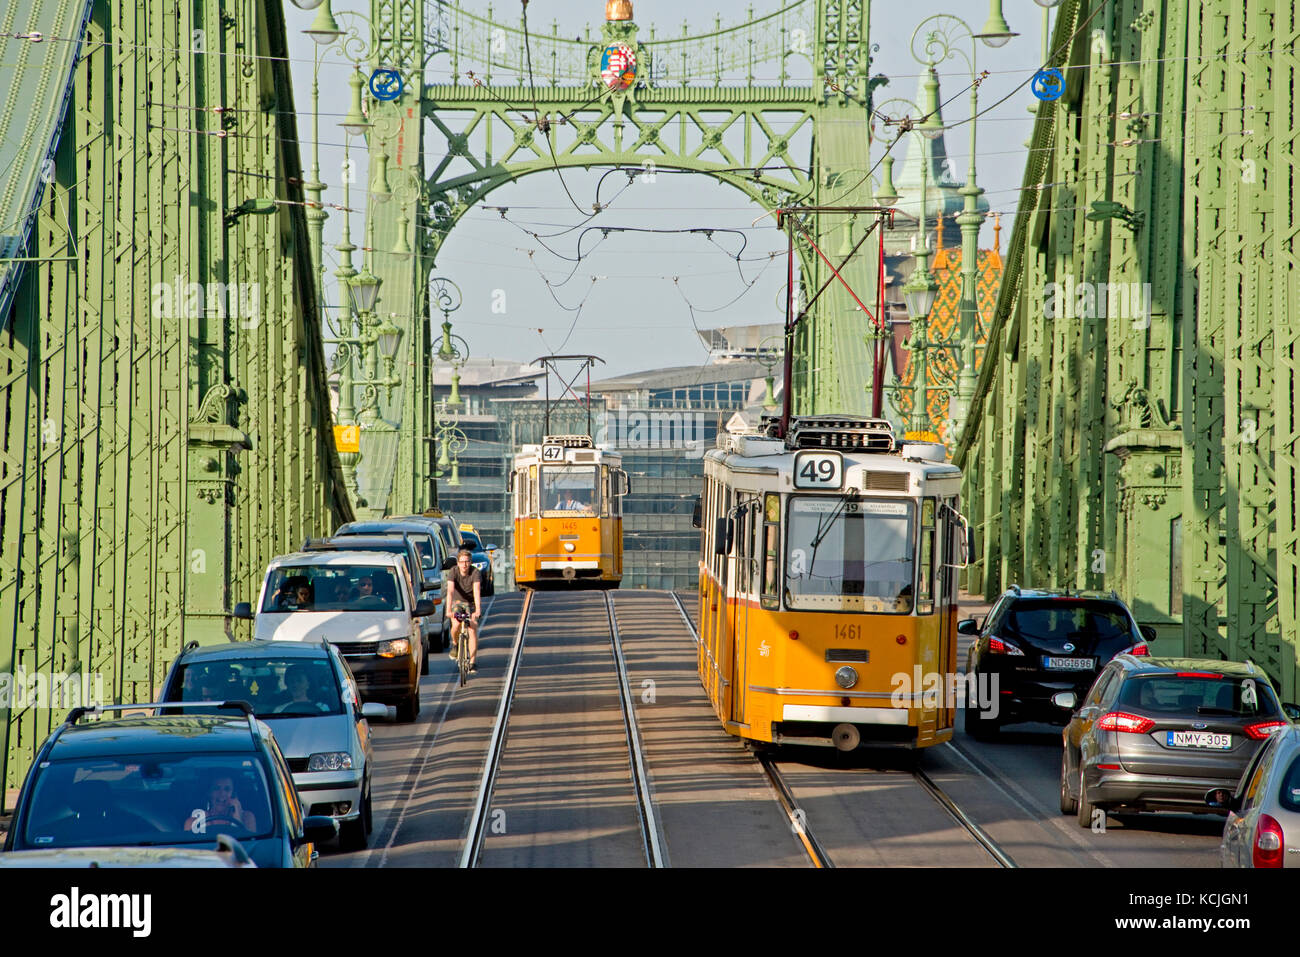 The Ganz CSMG tram in Budapest crossing the Liberty Bridge on a sunny day with blue sky. - Stock Image